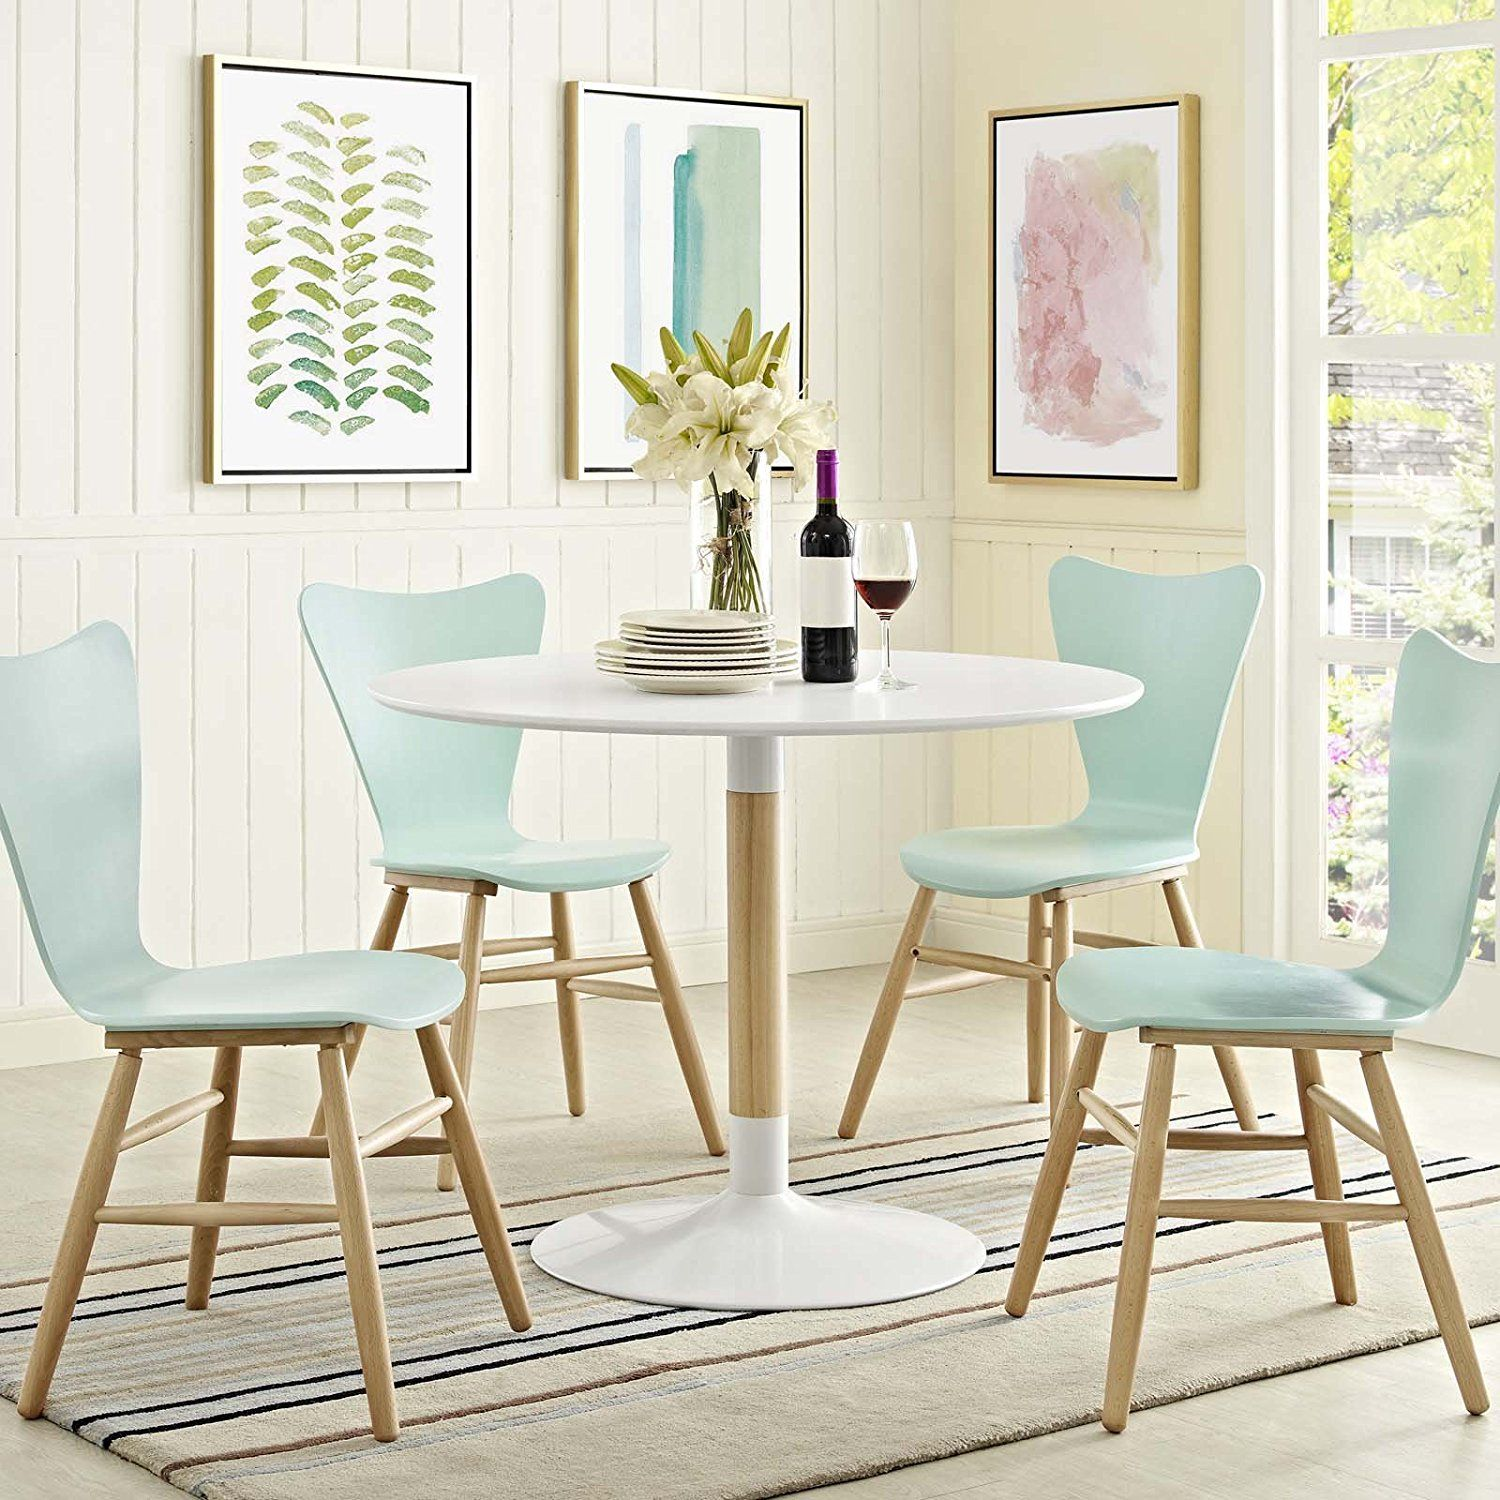 Contemporary dining table bases  HomeDecor Dining Table Chairs Wooden Legs Metal seating